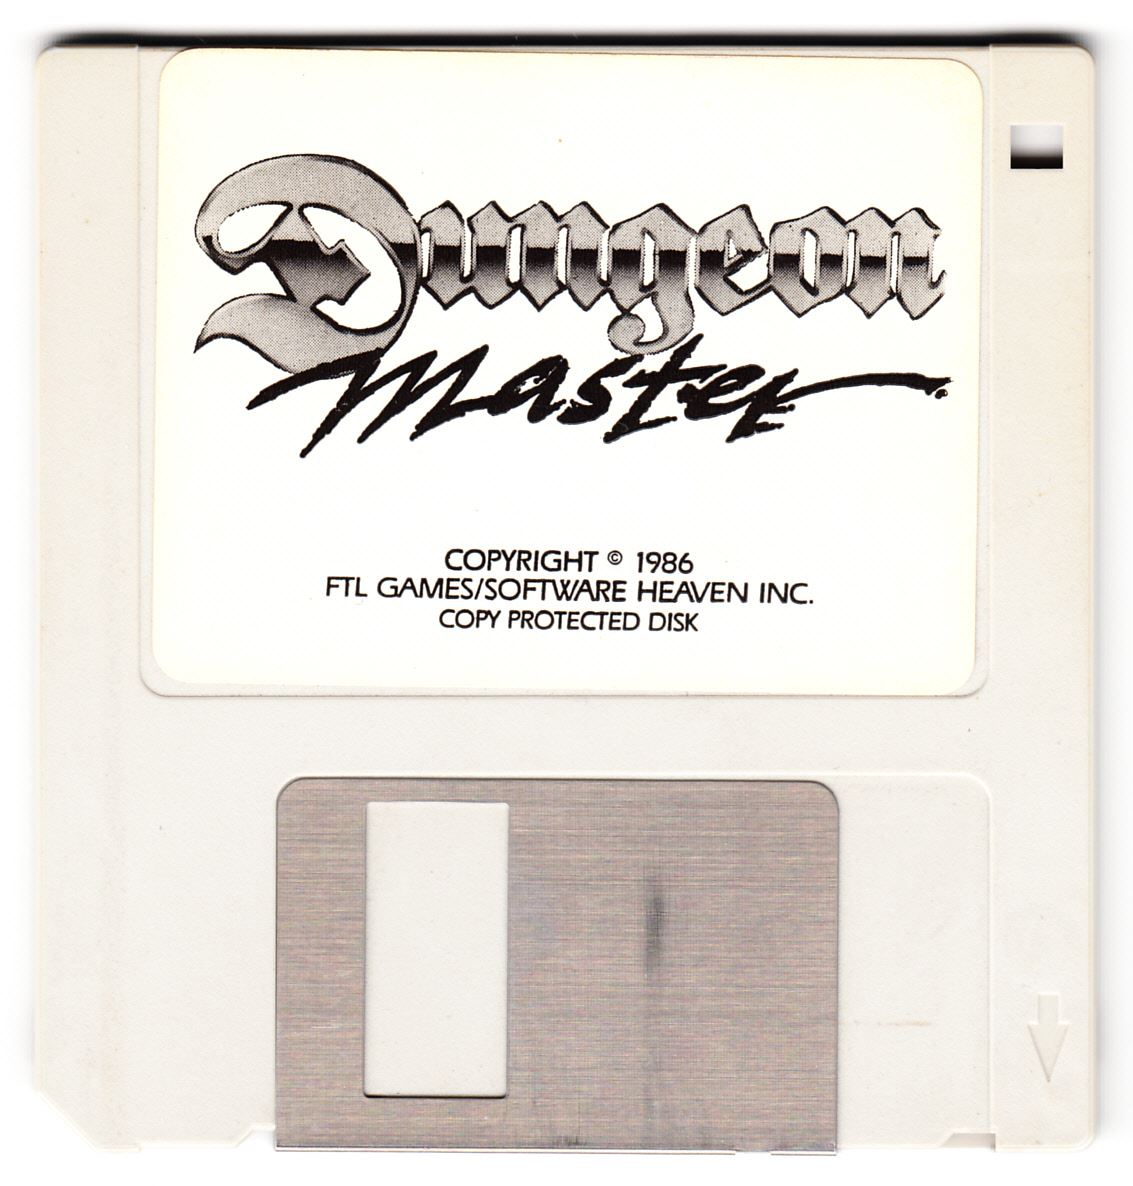 Game - Dungeon Master - US - Atari ST - Early Box - Game Disk - Front - Scan